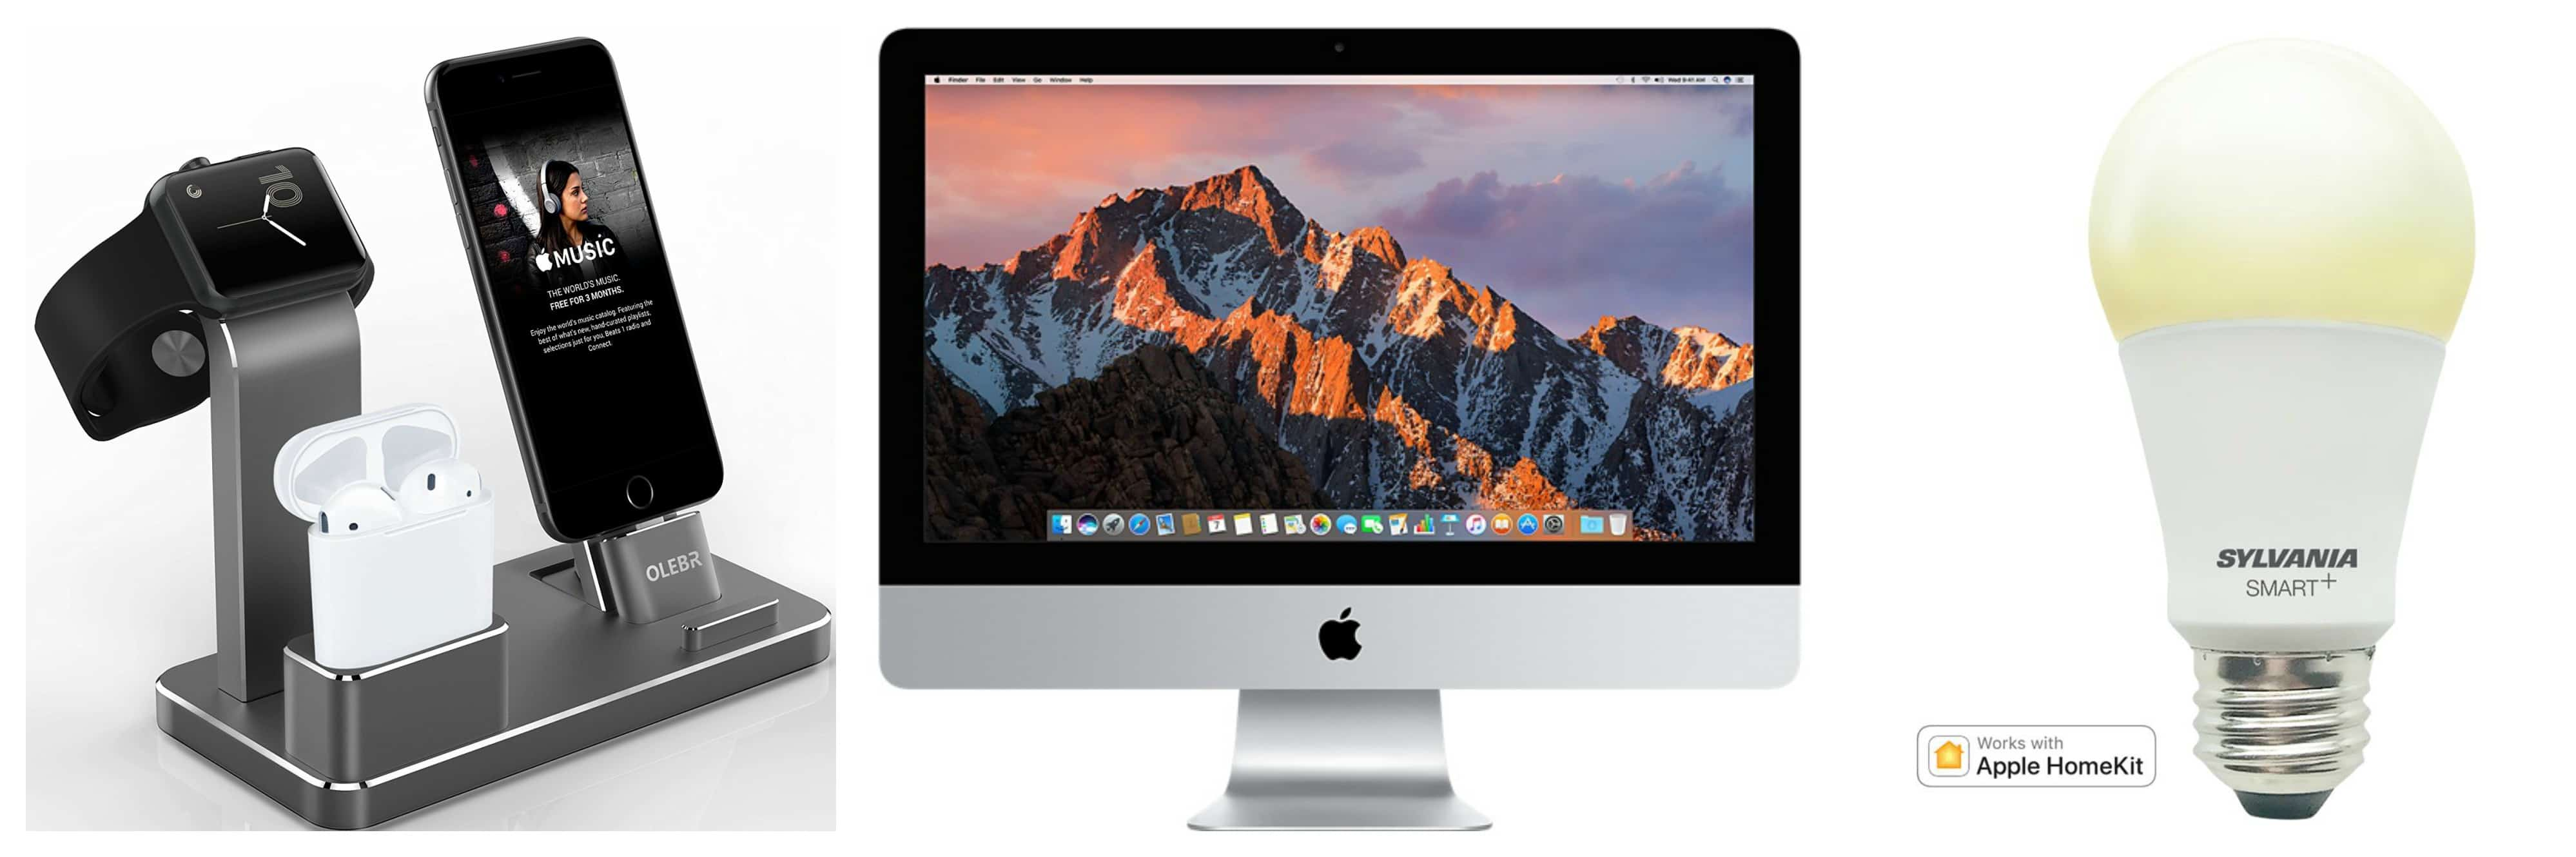 You'll find big savings on cool apple related gear in this week's roundup of best Apple deals.